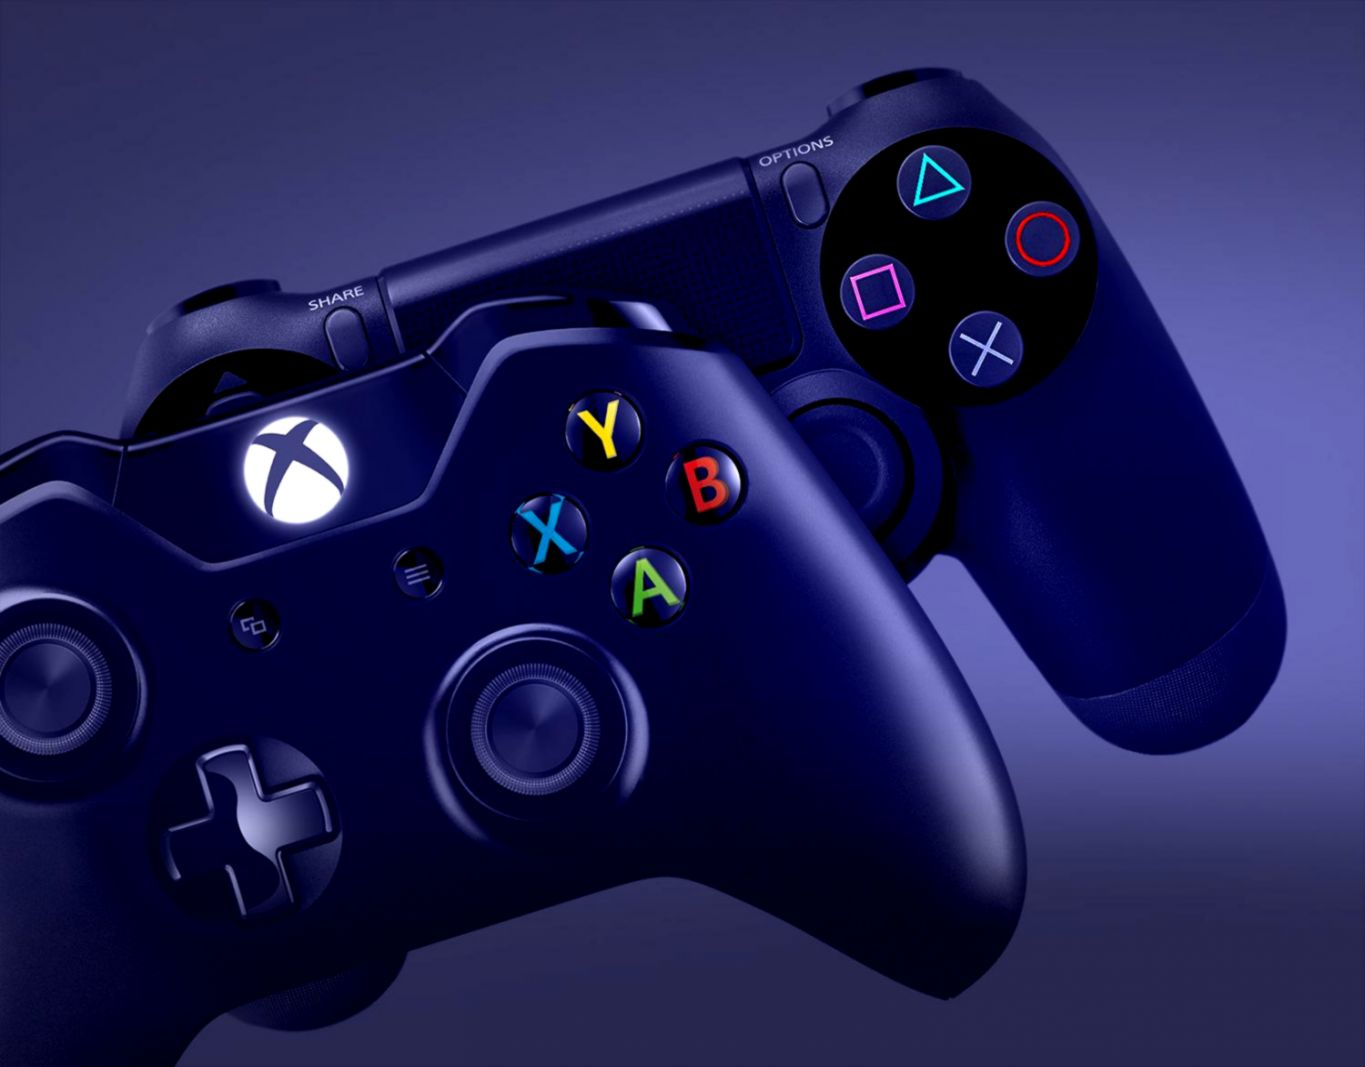 Xbox 360 Iphone Wallpaper Wallpapers Gallery